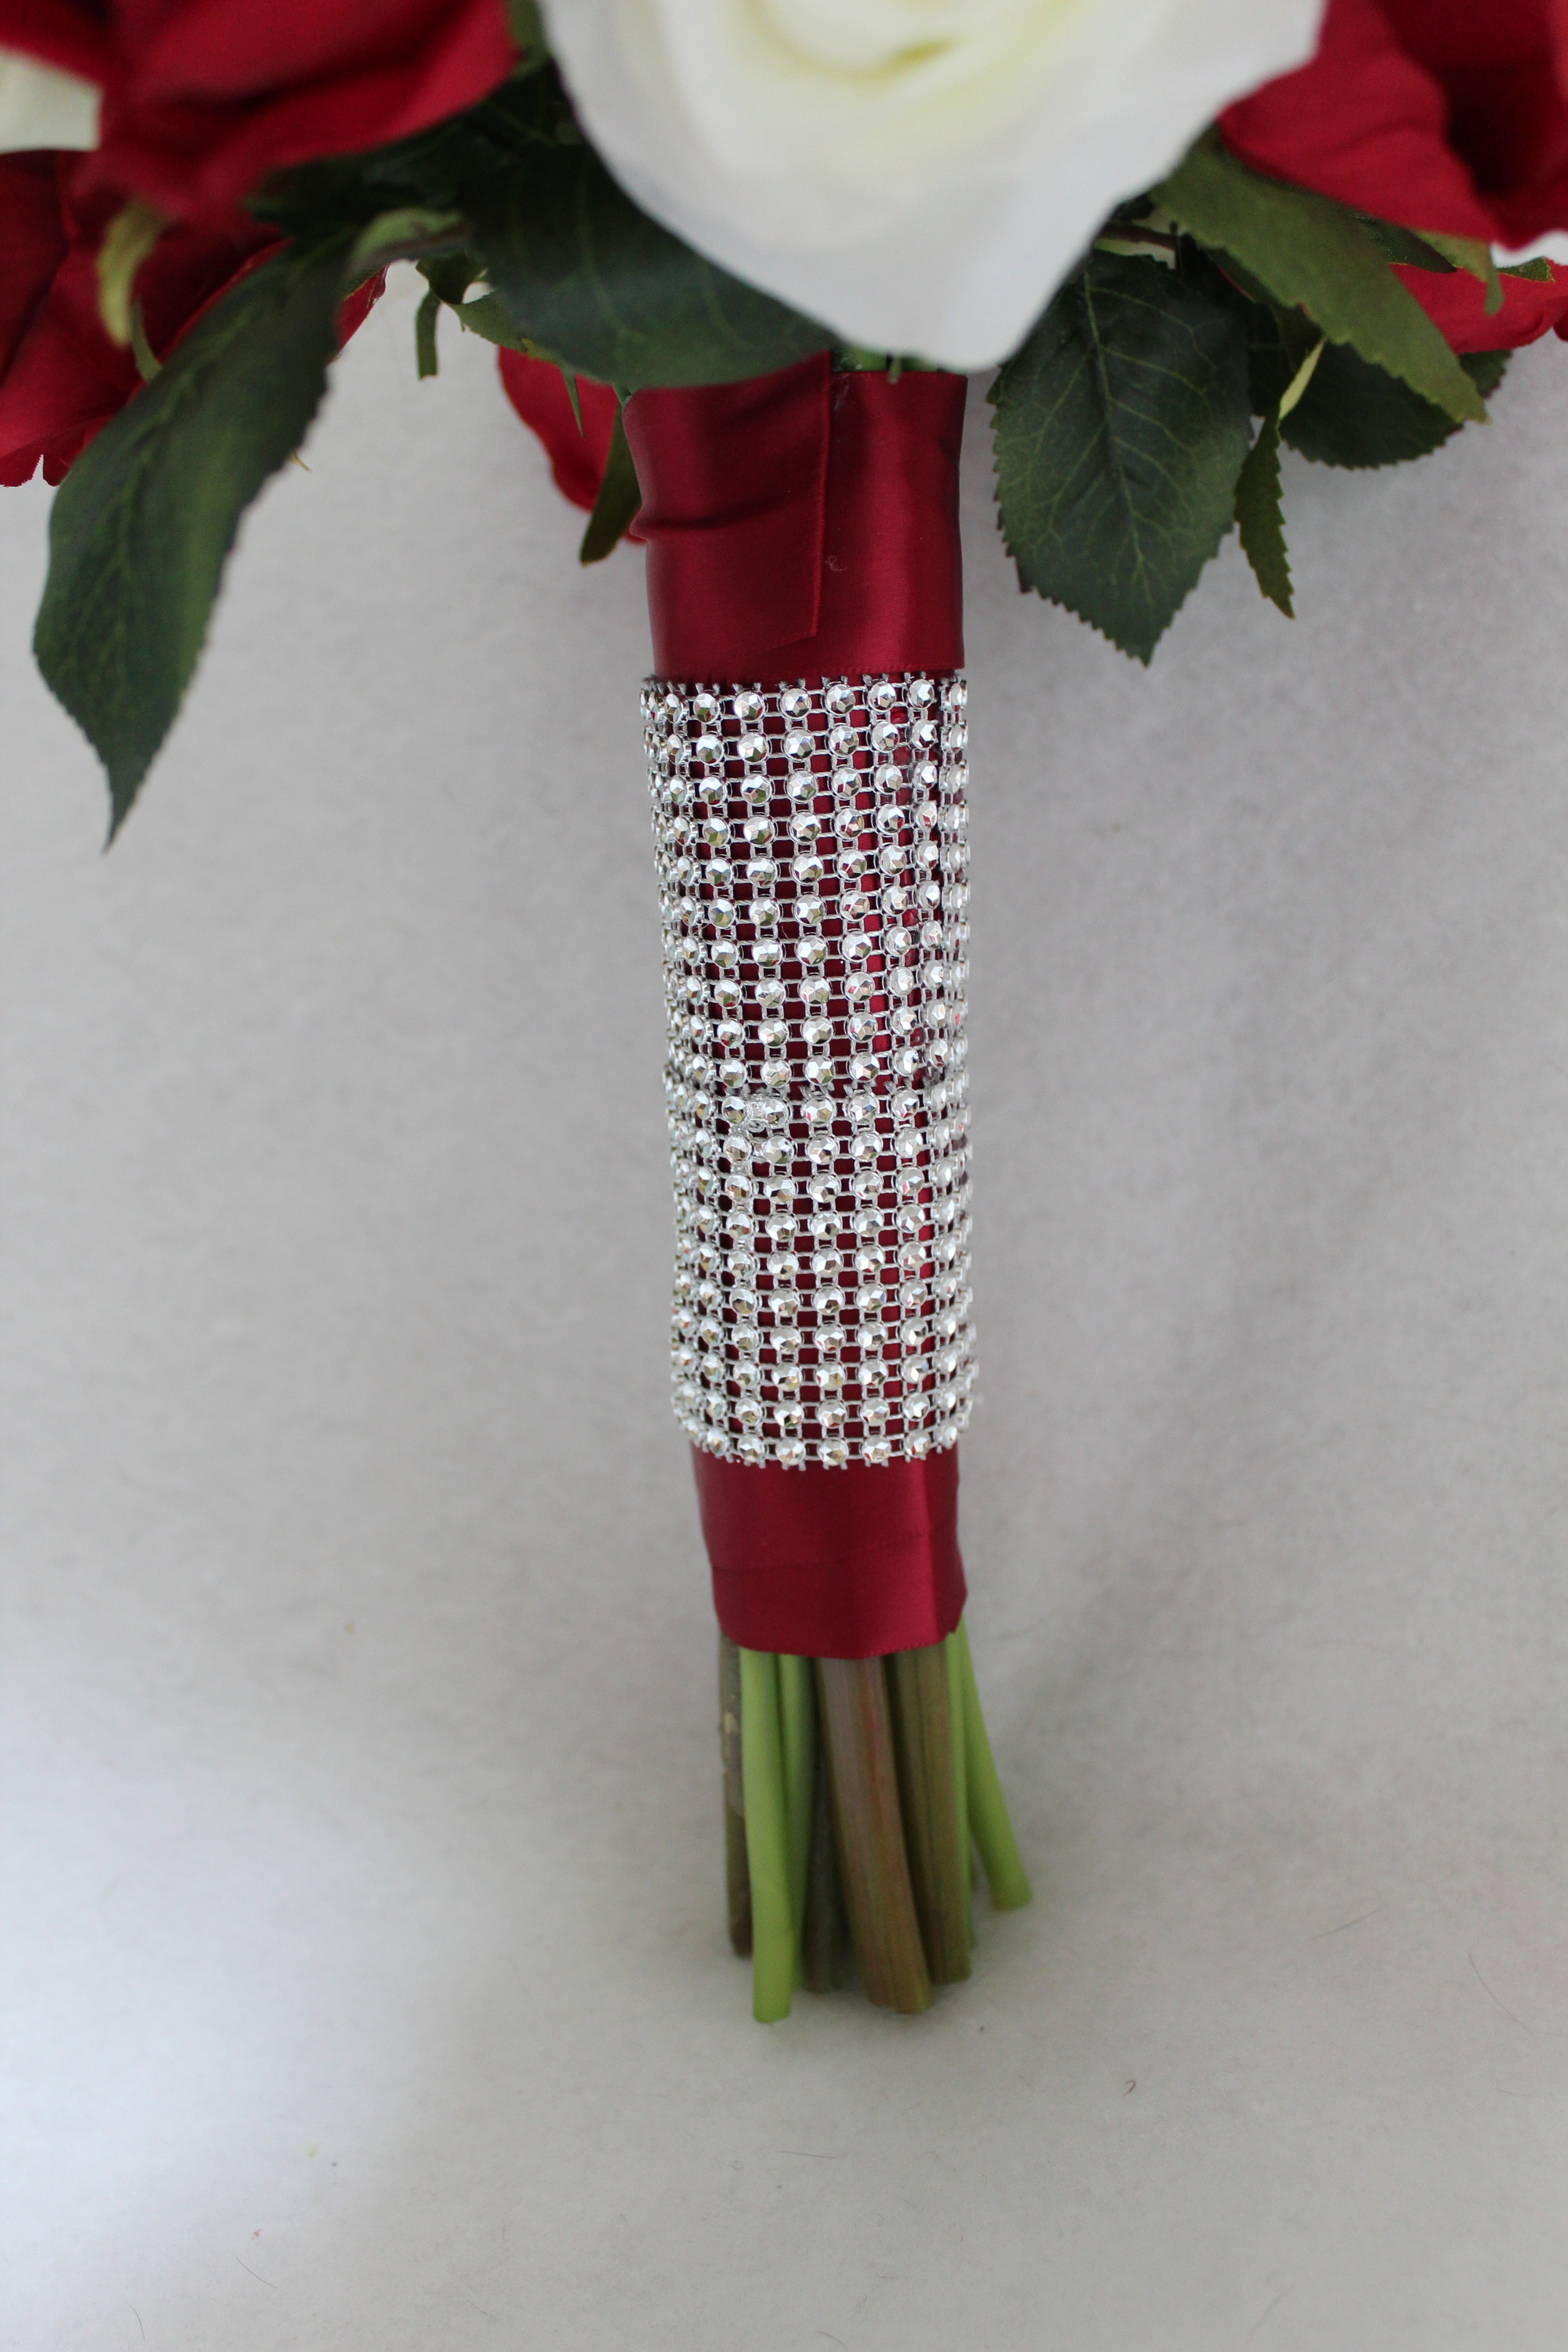 minneapolis-silk-florist-red-and-white-flowers-with-rhinestones-bridal-bouquet.jpg